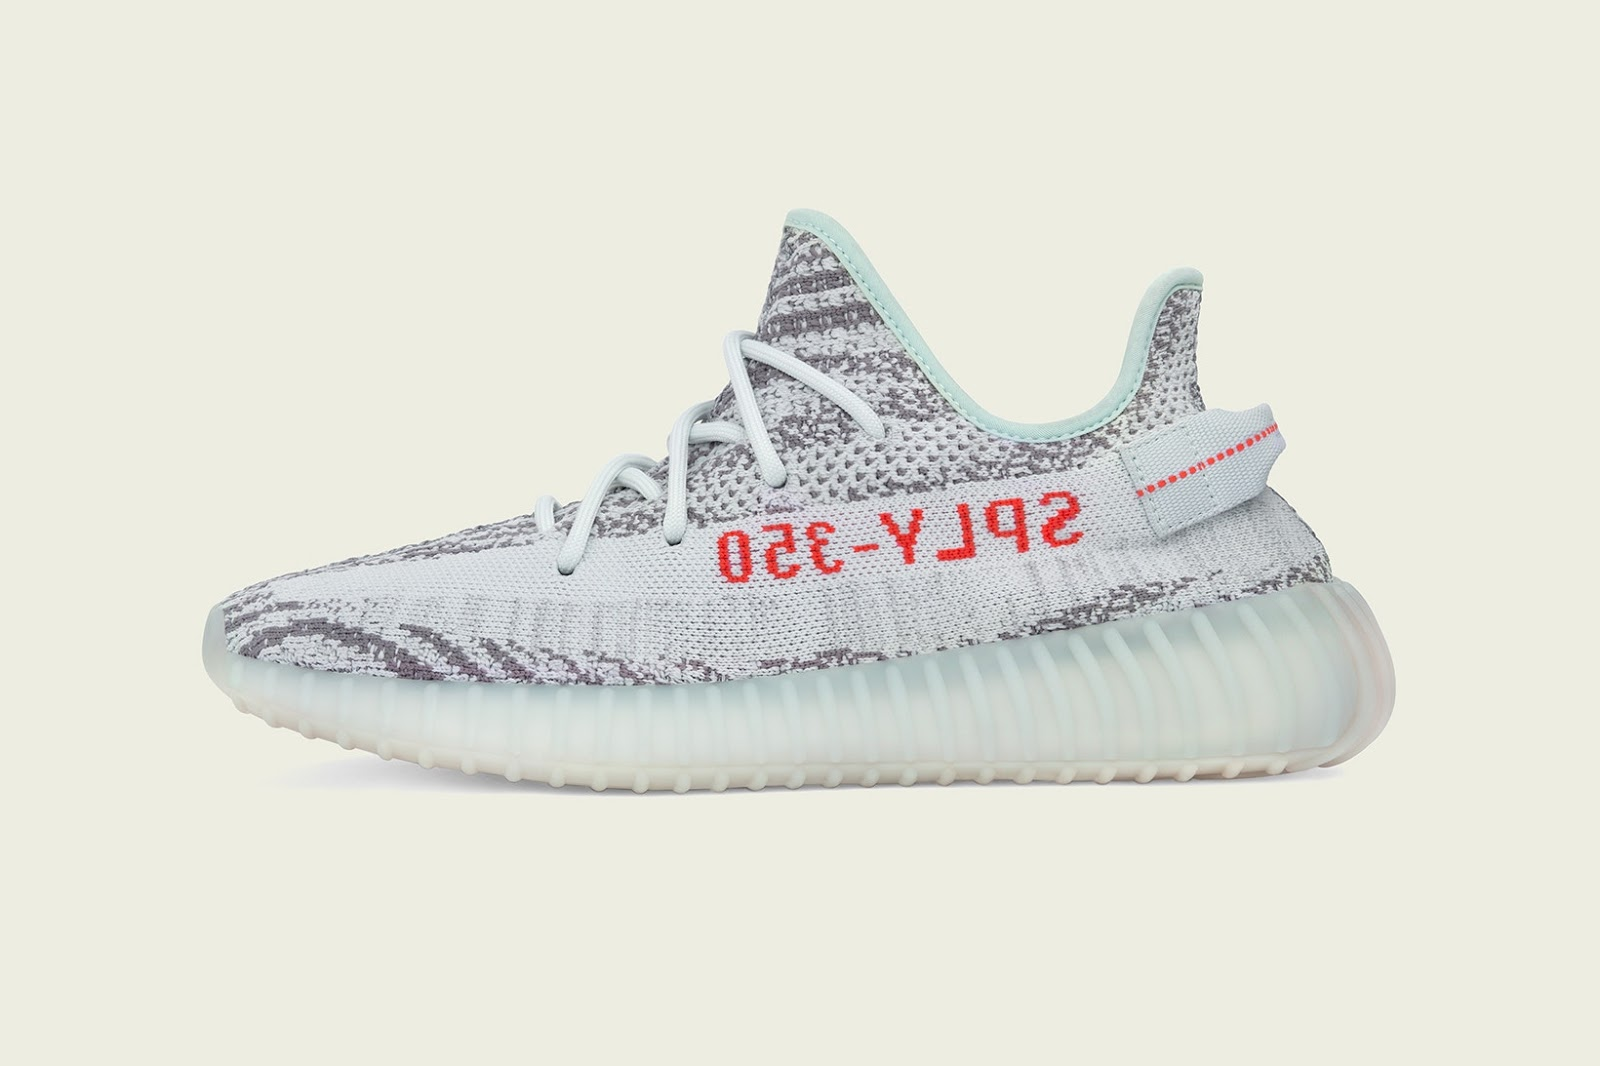 """cc26d2cef3edd adidas has recently confirmed that the """"Semi Frozen Yellow"""" and """"Beluga 2.0""""  YEEZY BOOST 350 V2 colorways will drop in the coming weeks"""